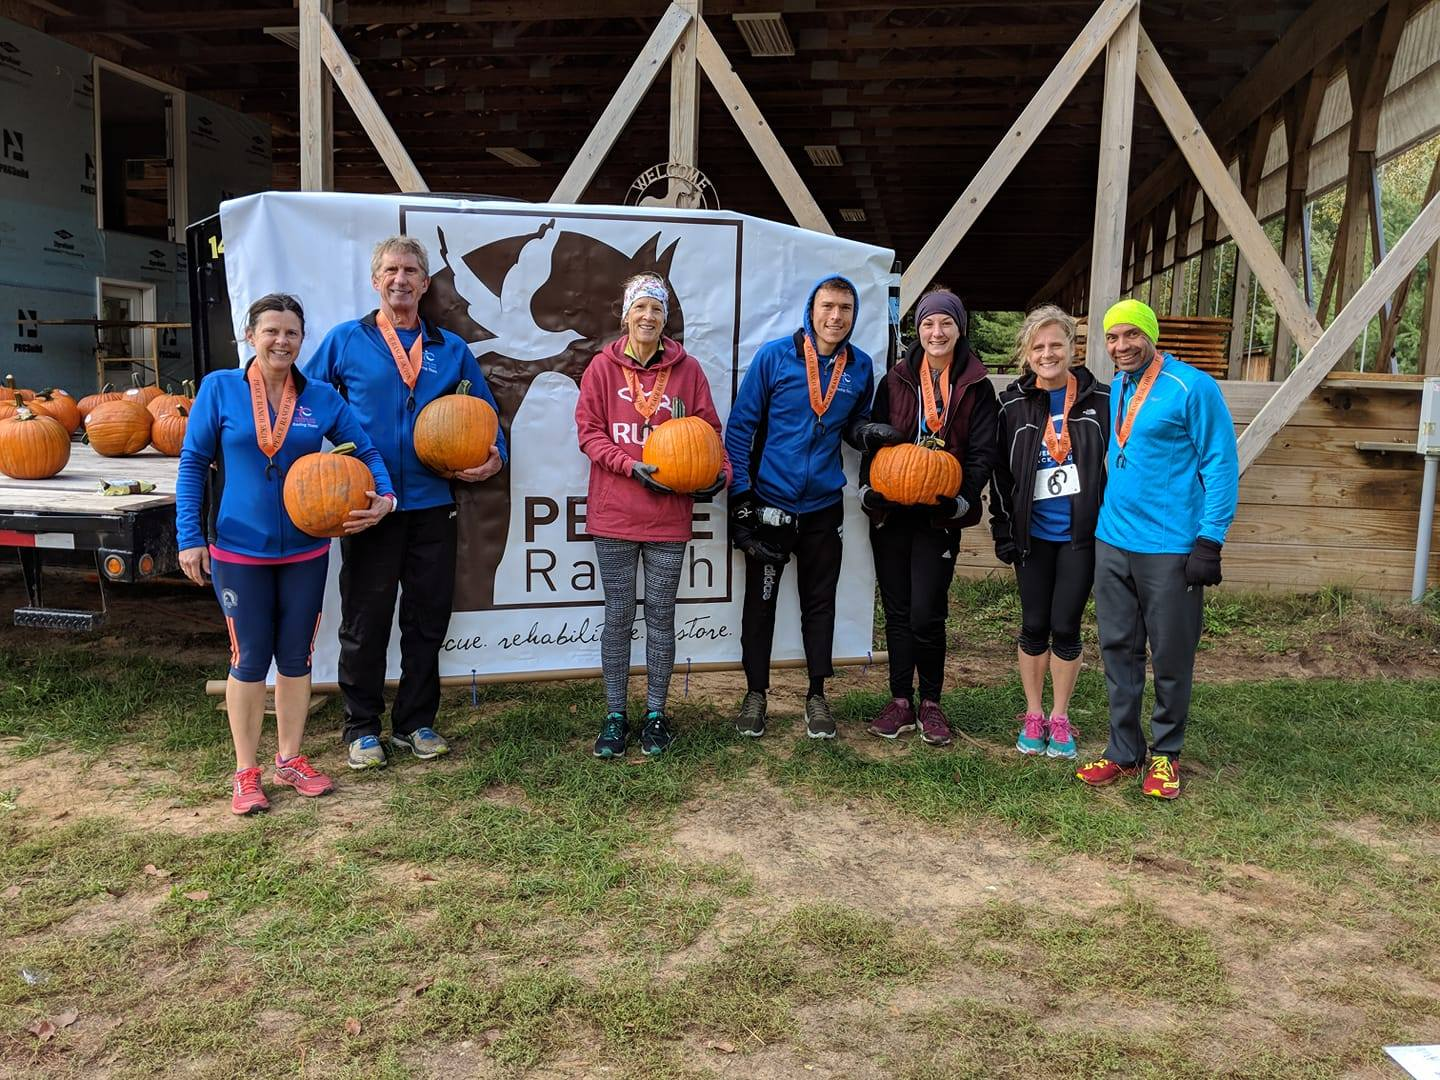 The Peace Ranch 5k/10k Run offers a unique 5k through the Pere Marquette forest or a rugged 10K trail course. Walk, run, or take a ride on a horse-driven carriage. All proceeds benefit rescue horses in our therapeutic herd.